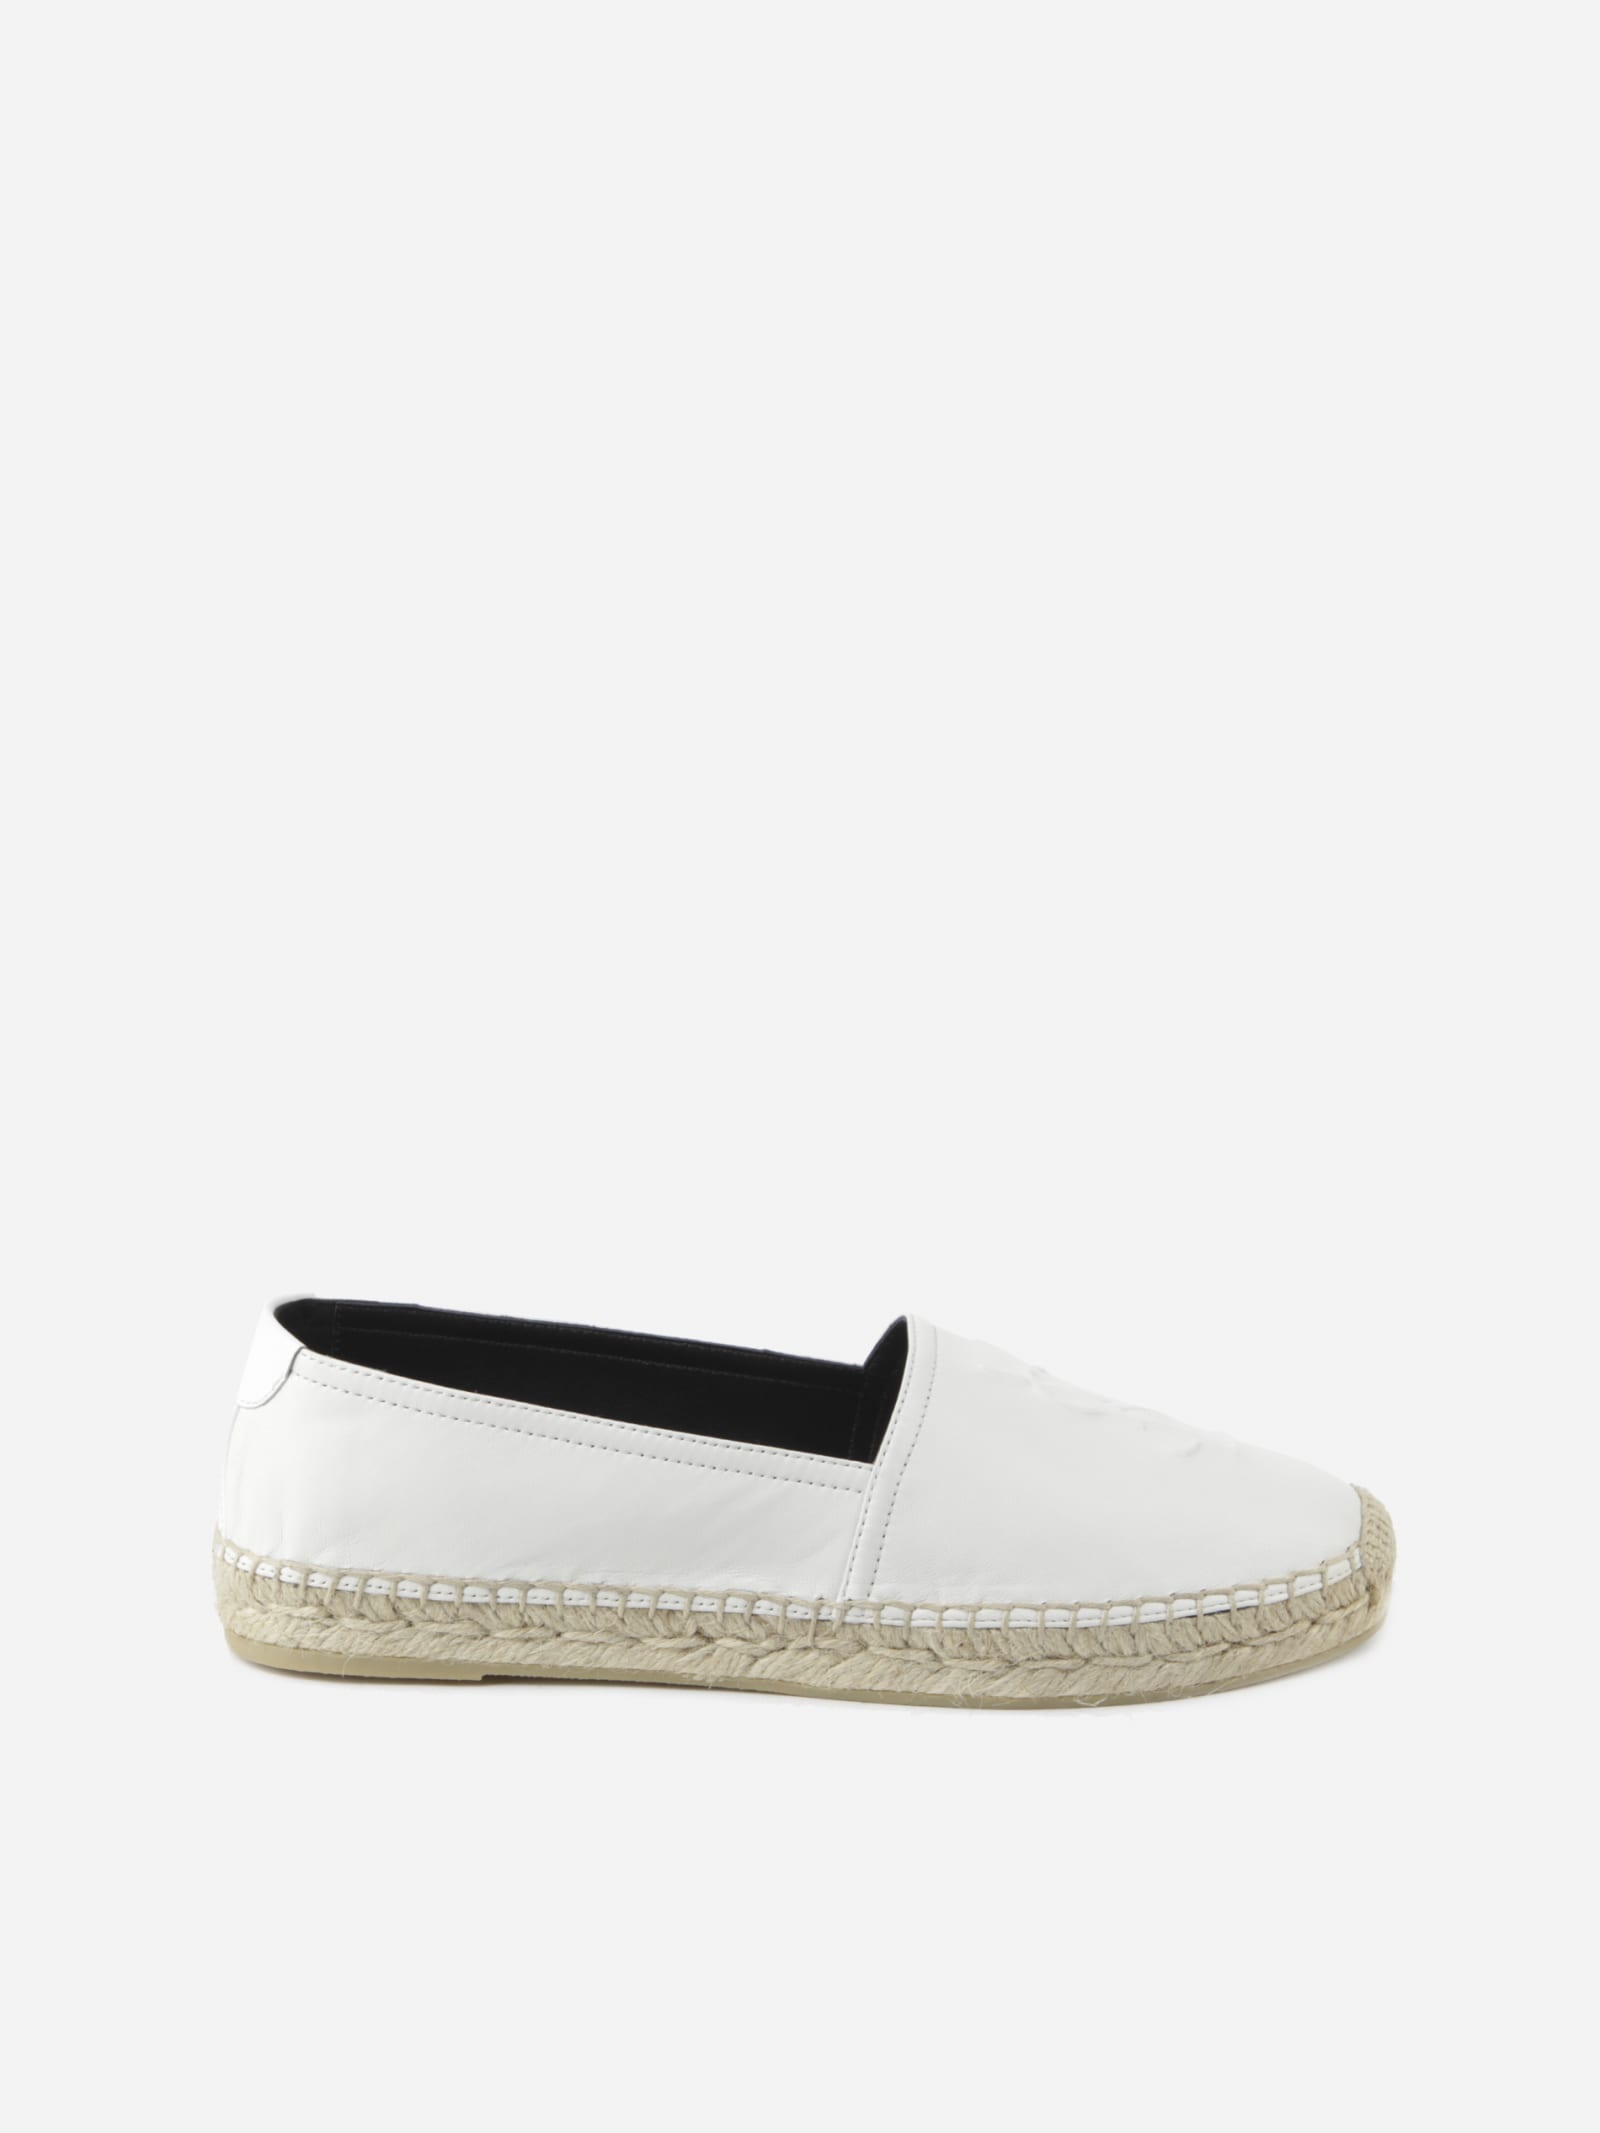 Saint Laurent Monogram Espadrilles Made Of Leather